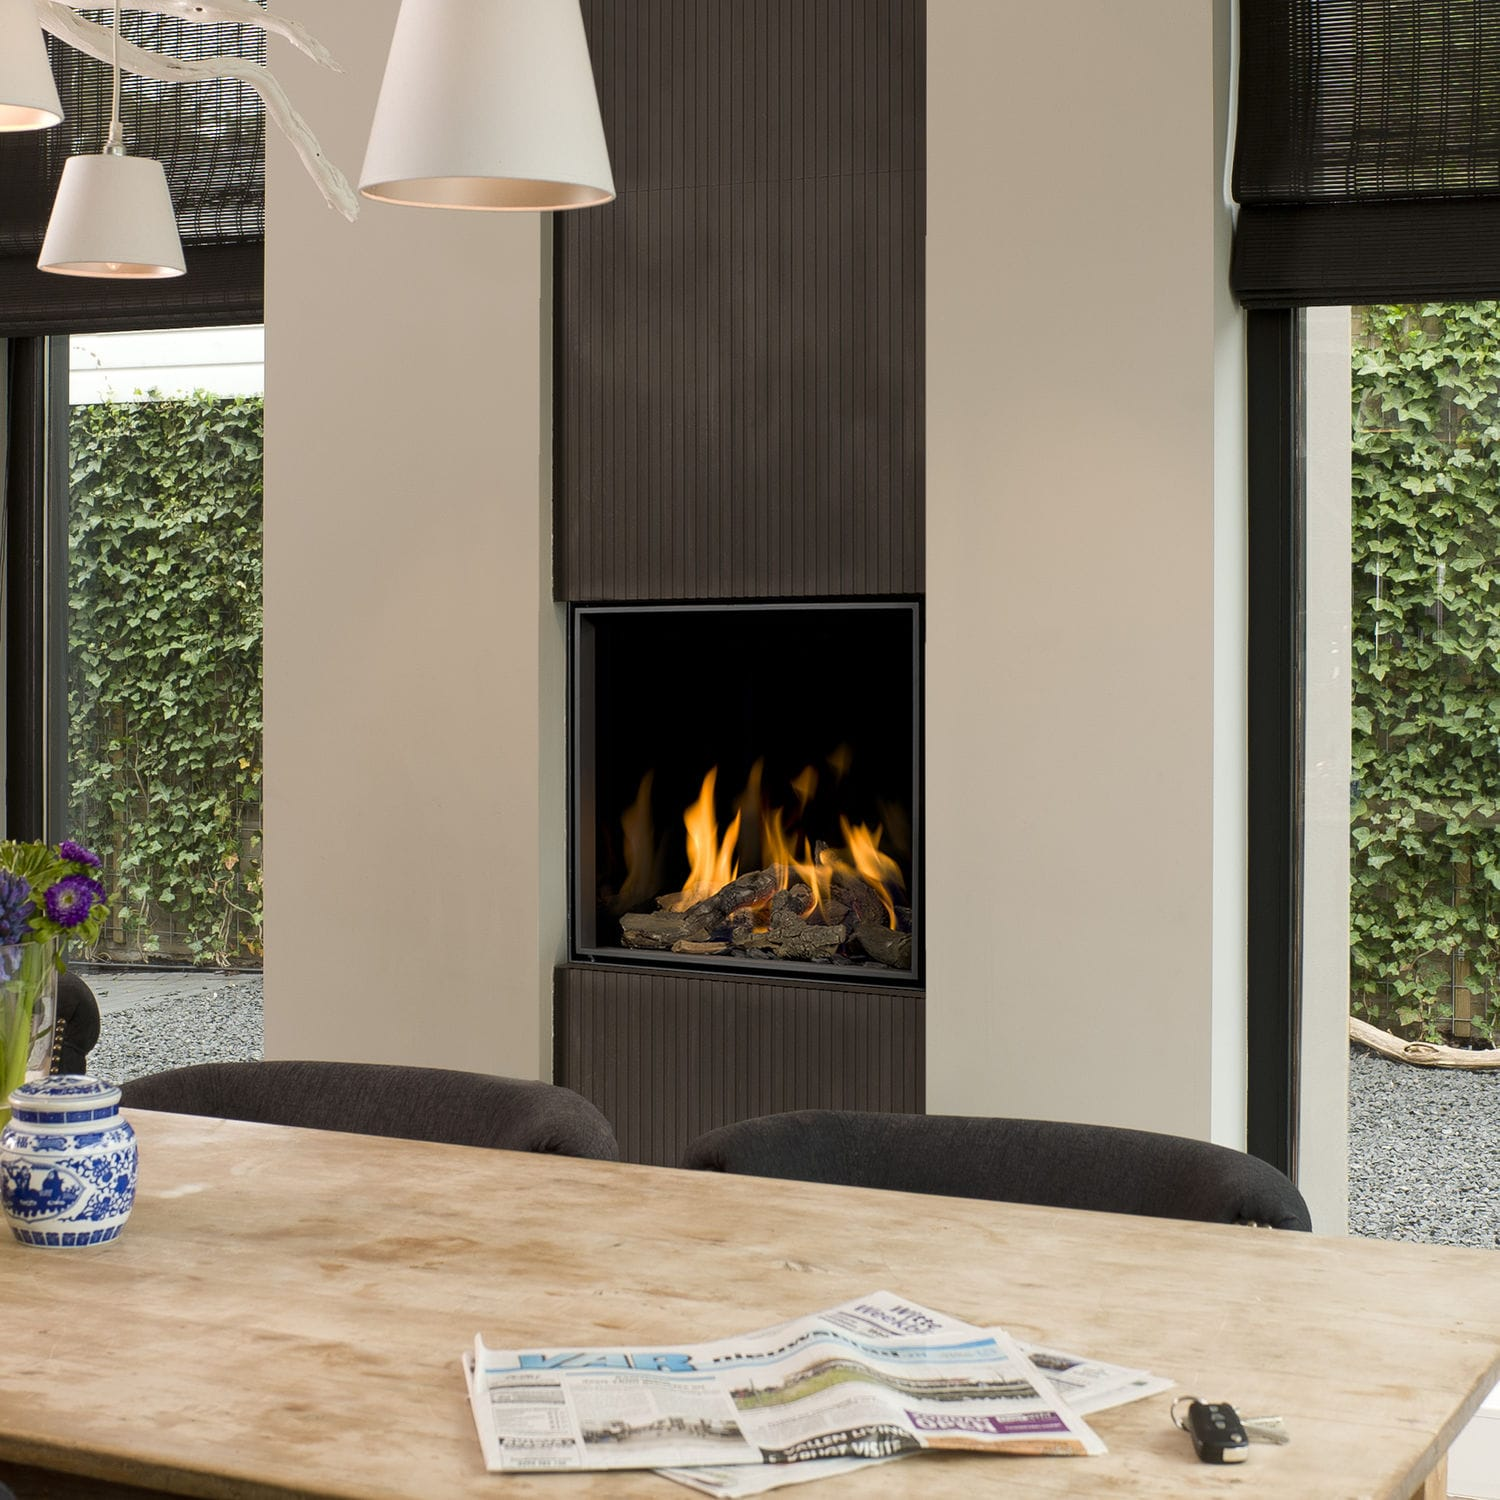 in ins modern gas ideas furniture of full on surrounded fireplace each lennox built size side a cabinets